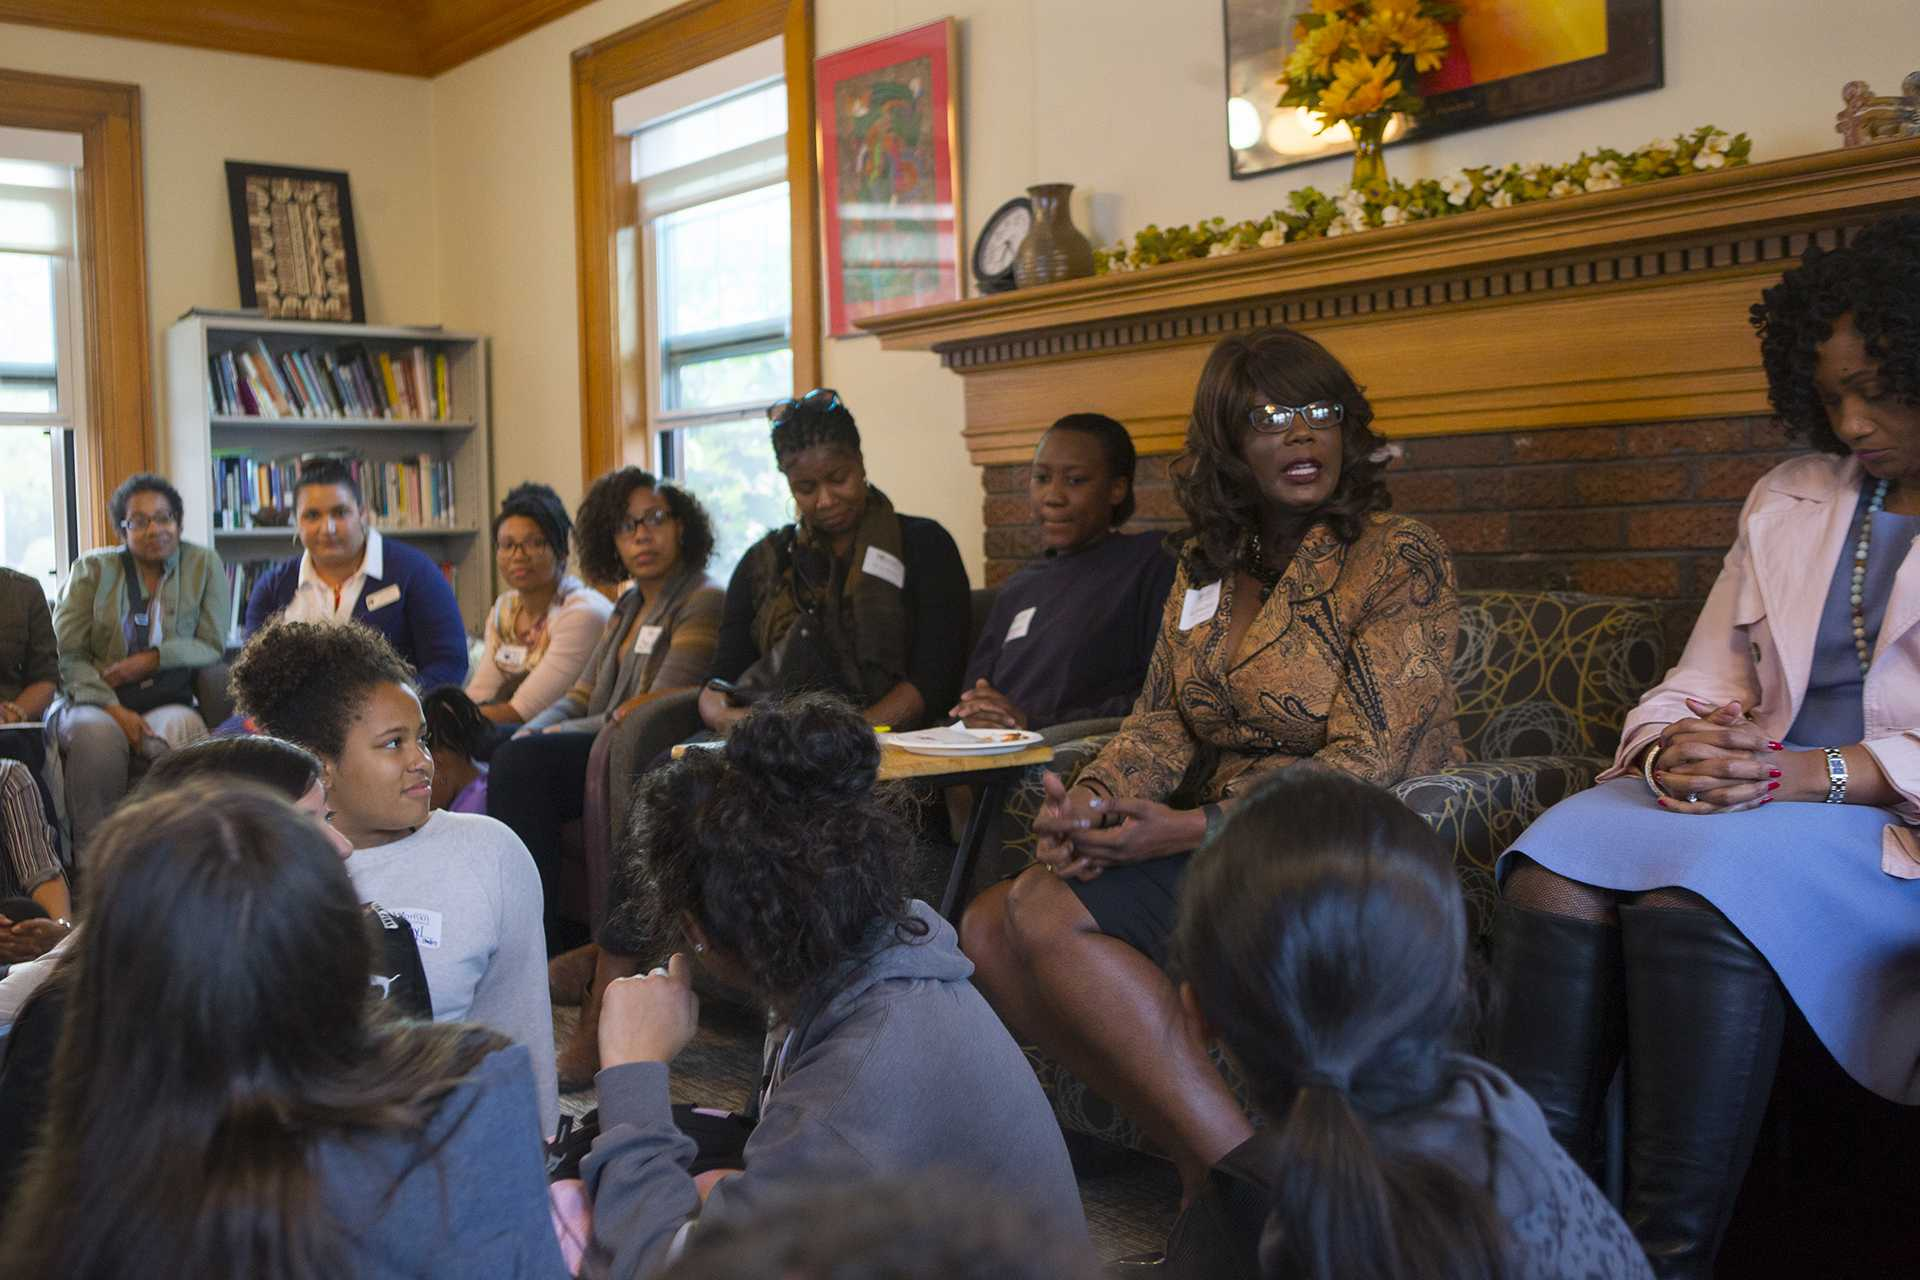 Vice President for Student Life Melissa Shivers speaks  during the Womxn of Colour Welcome Mixer at the Women's Resource and Action Center on Wednesday, Sept. 6, 2017. It was the inaugural event for the Womxn of Colour Network Series, and will feature a monthly program on a topic affecting women of color.